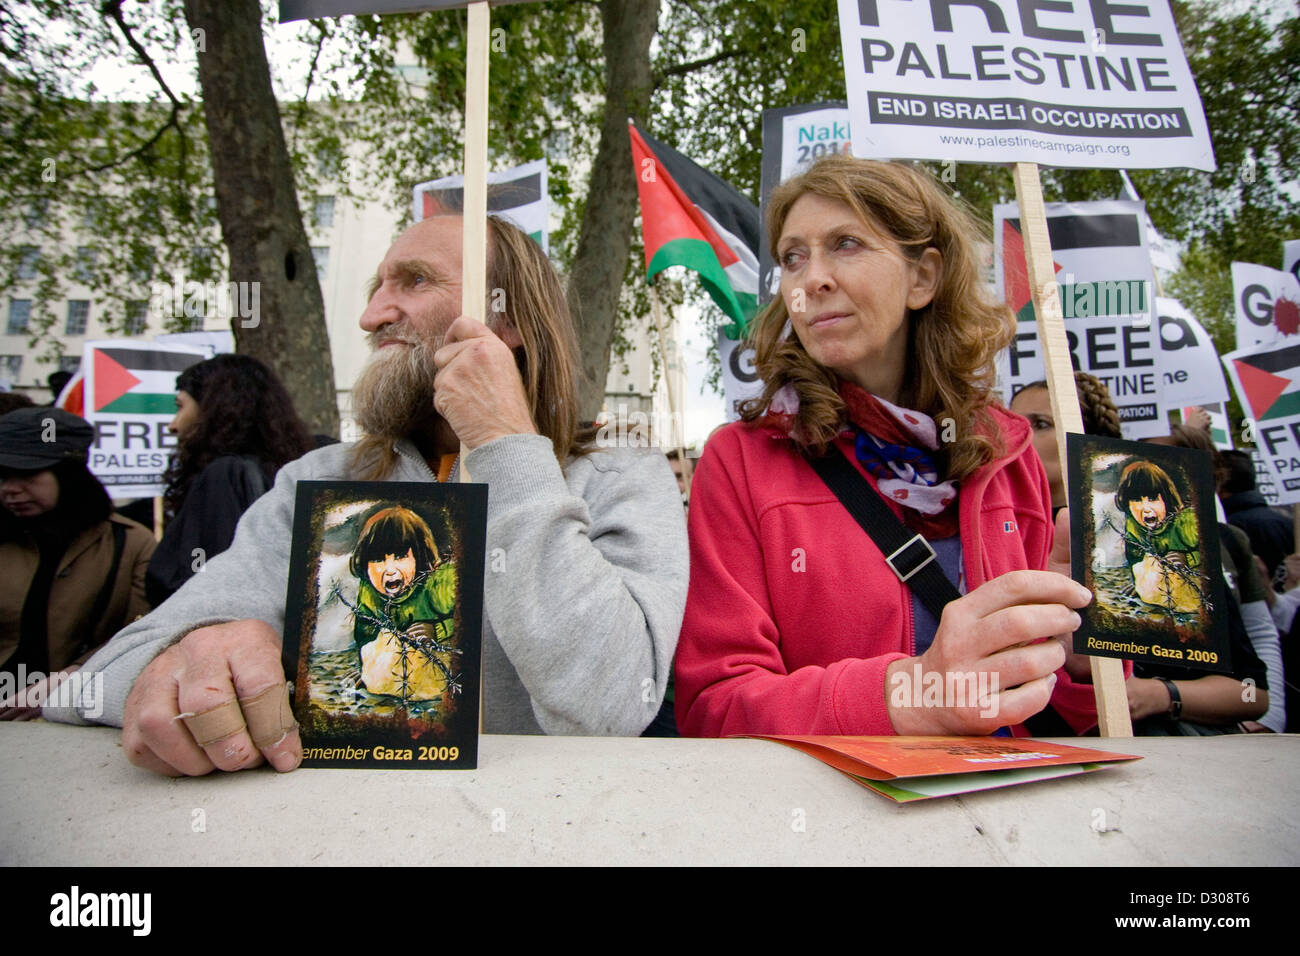 A pro Palestinian protest held outside Downing St in London. - Stock Image